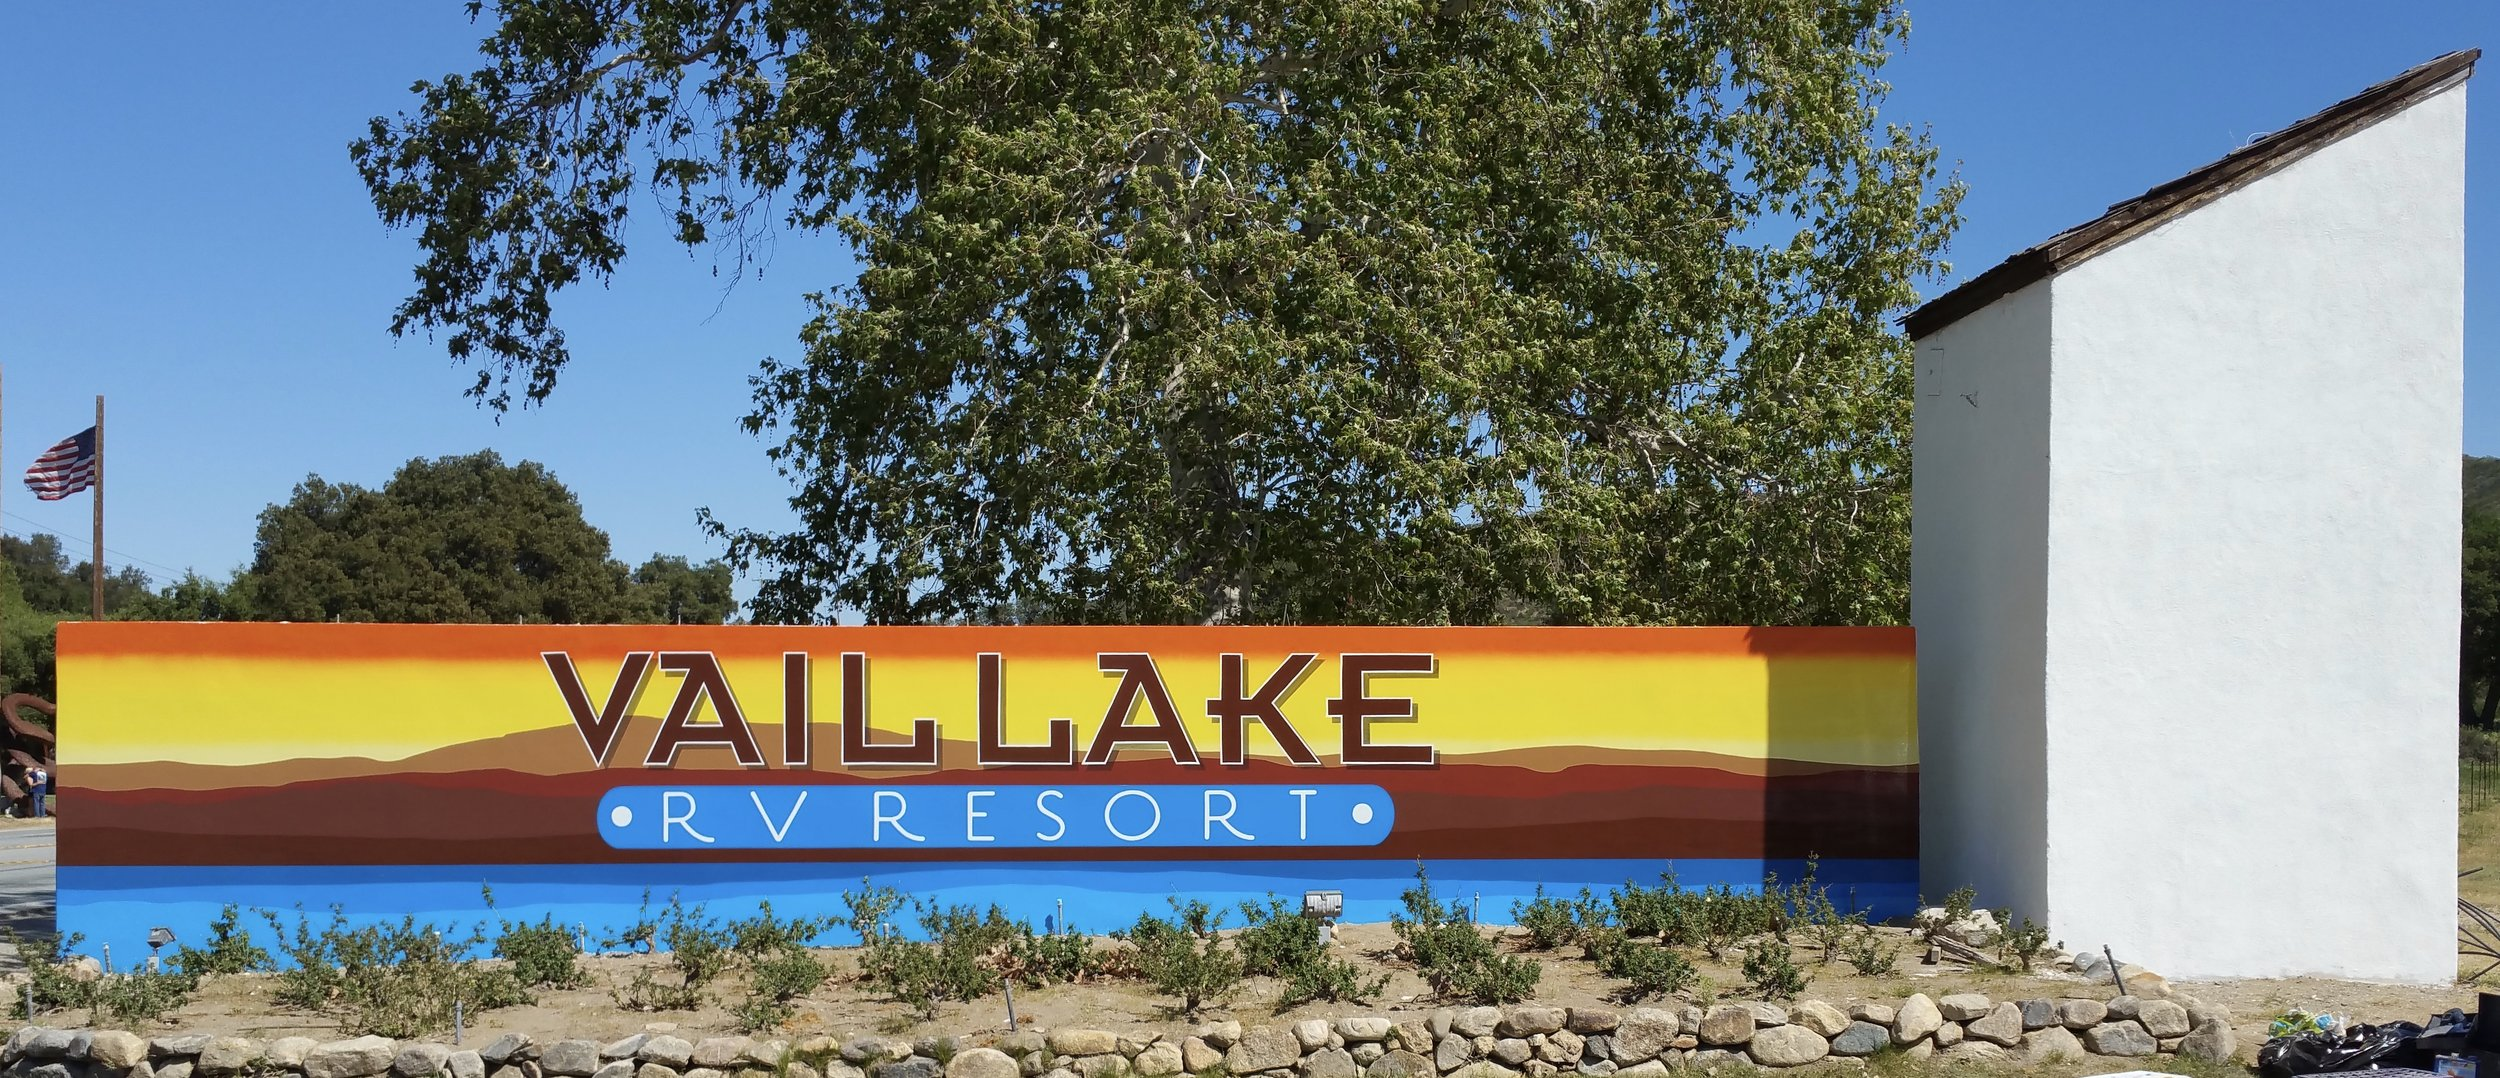 One last item — this Vail Lake RV Resort two-sided monument sign has hand-painted graphics, and is located in Temecula, near San Diego CA.